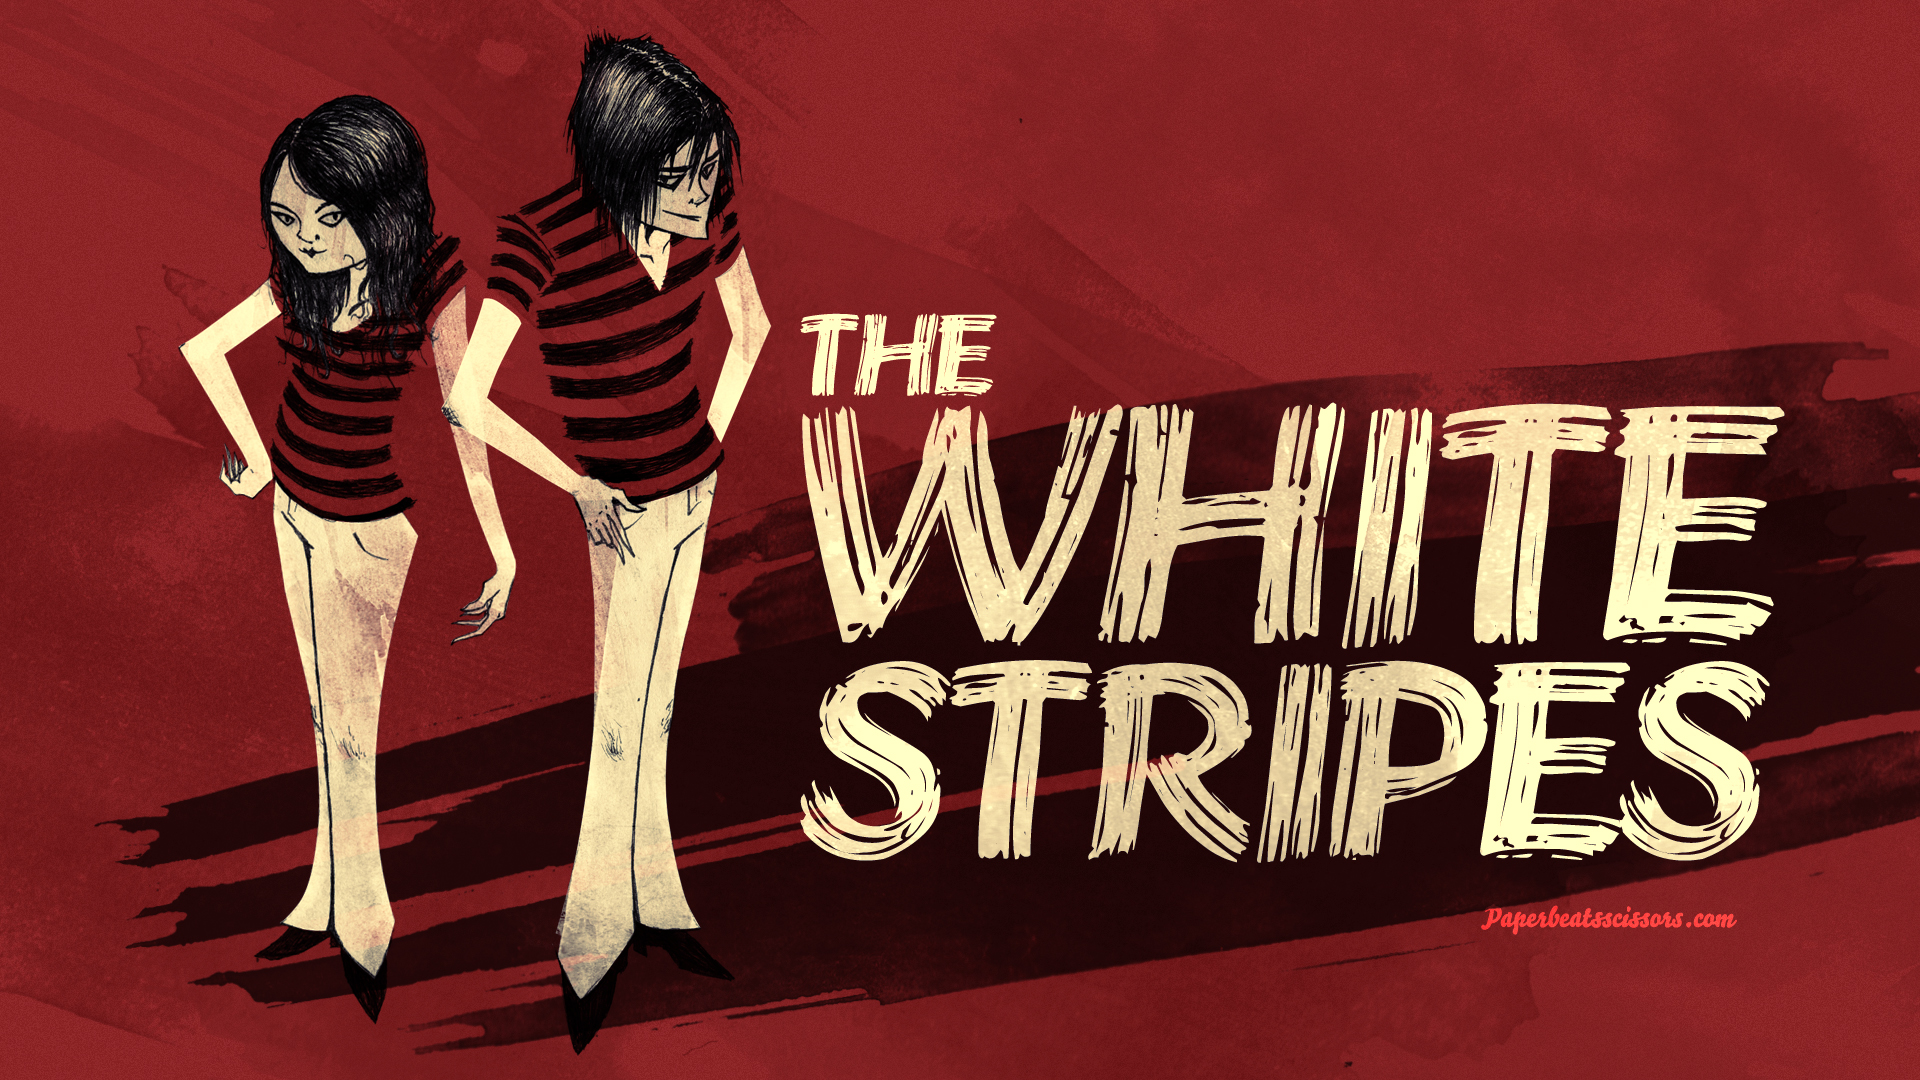 The White Stripes Red Drawing wallpaper background 1920x1080